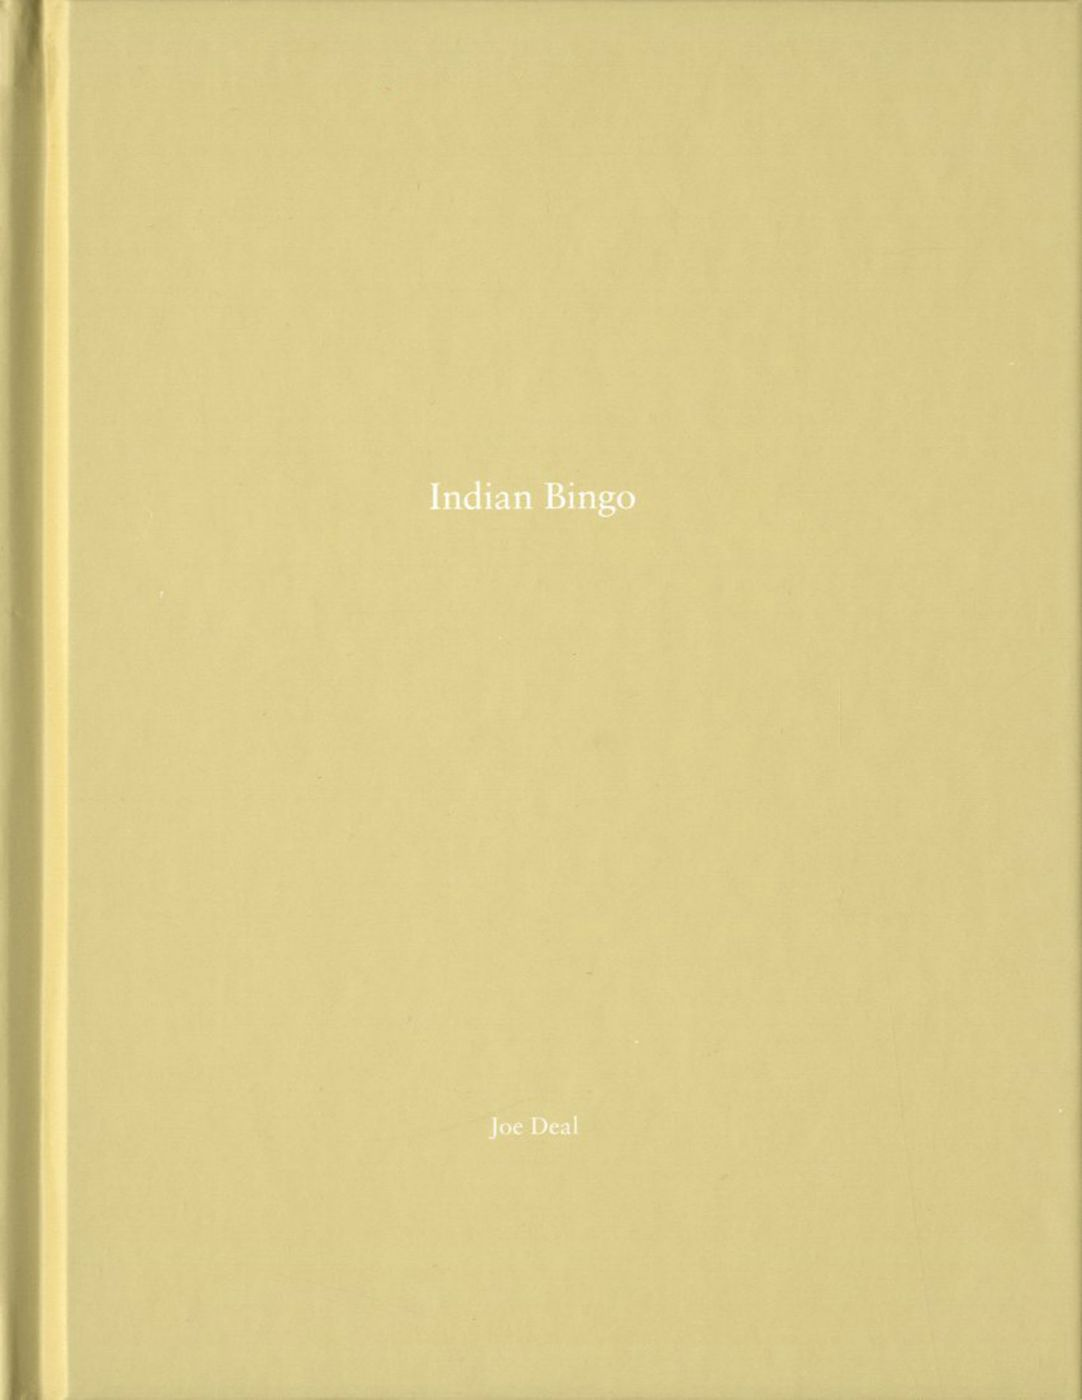 Joe Deal: Indian Bingo (One Picture Book #53), Limited Edition (with Print)